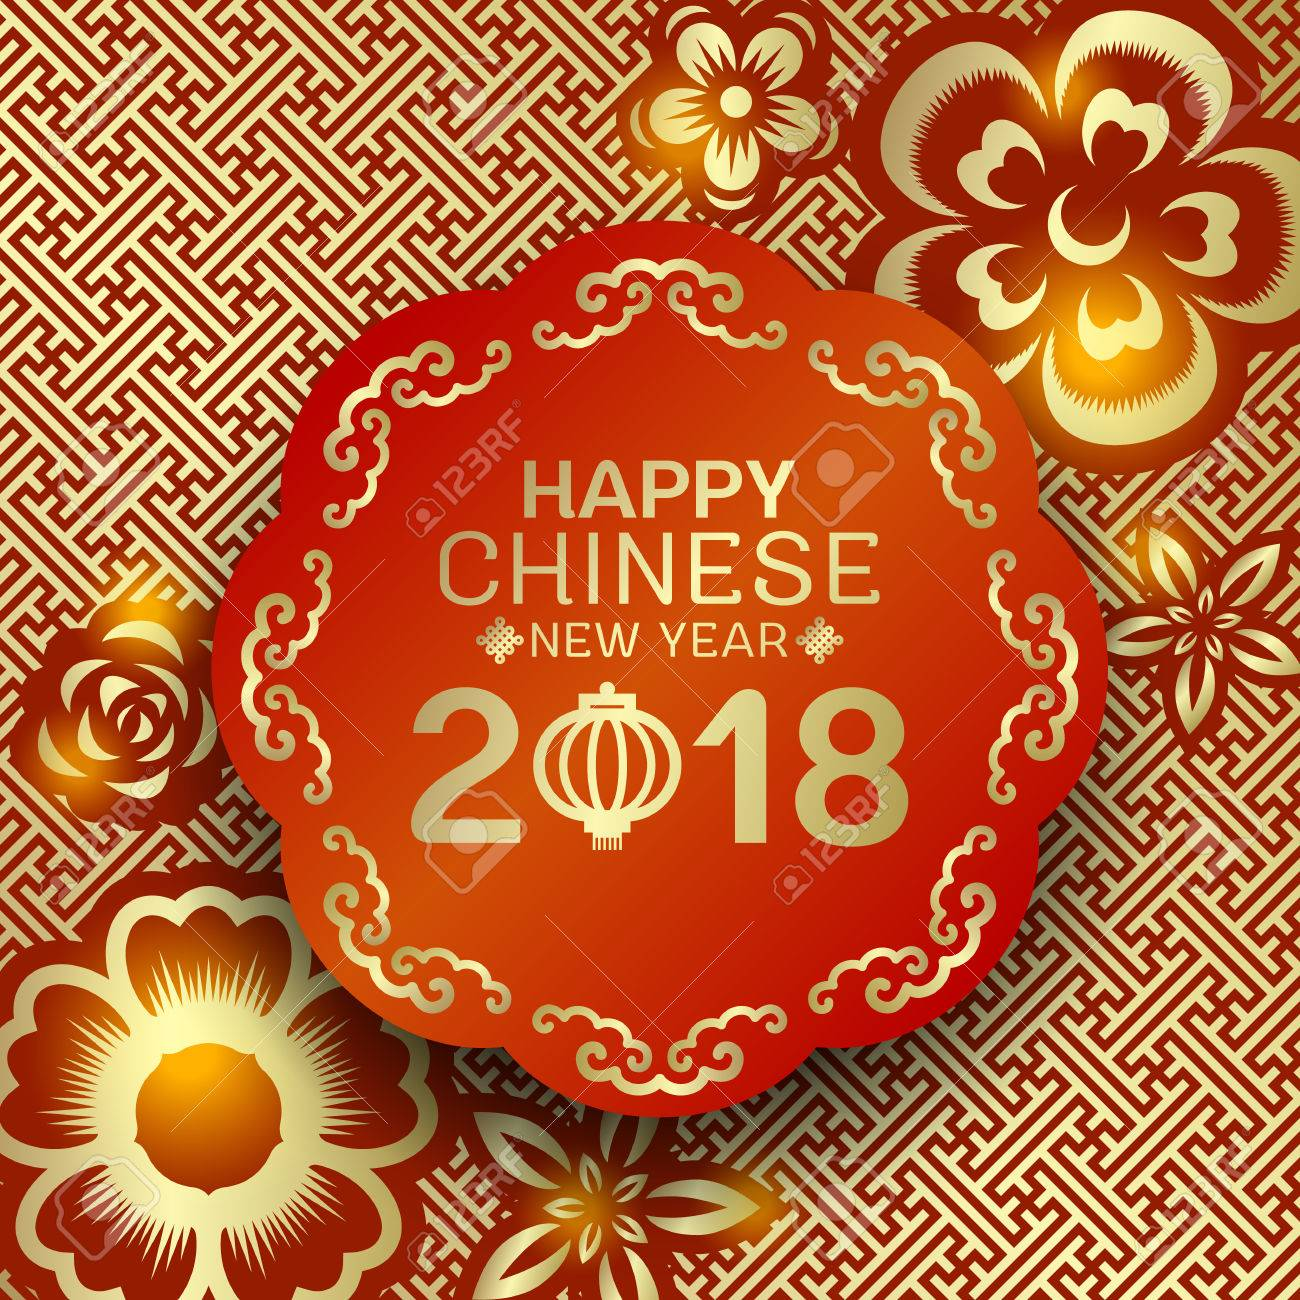 happy-chinese-new-year-2018-